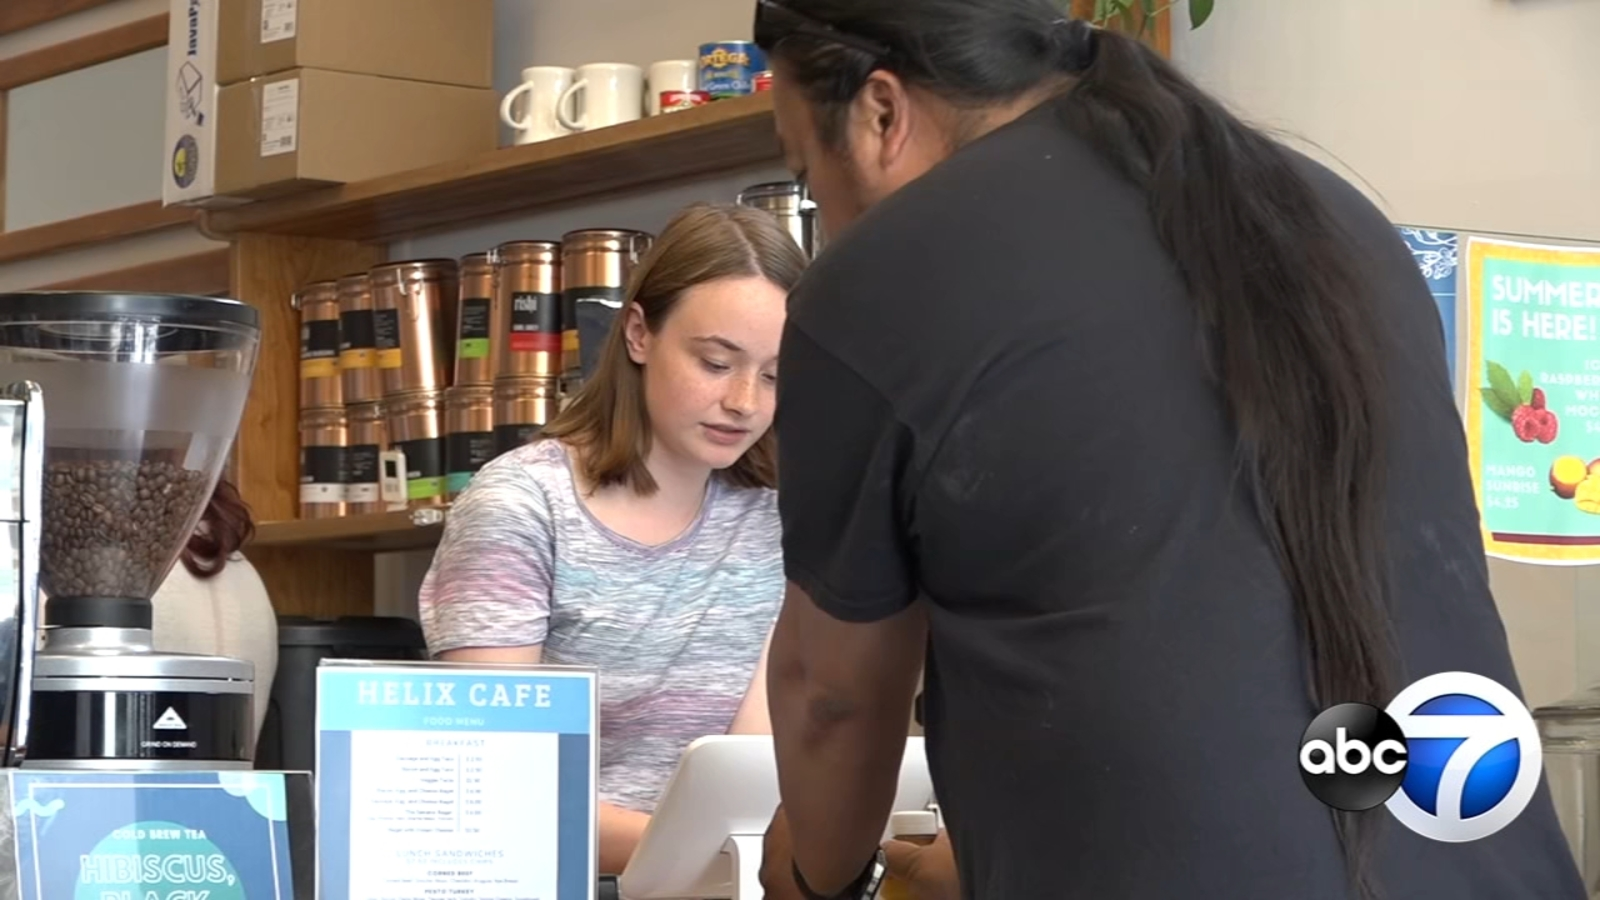 Edgewater cafe provides jobs for unemployed youth in Chicago